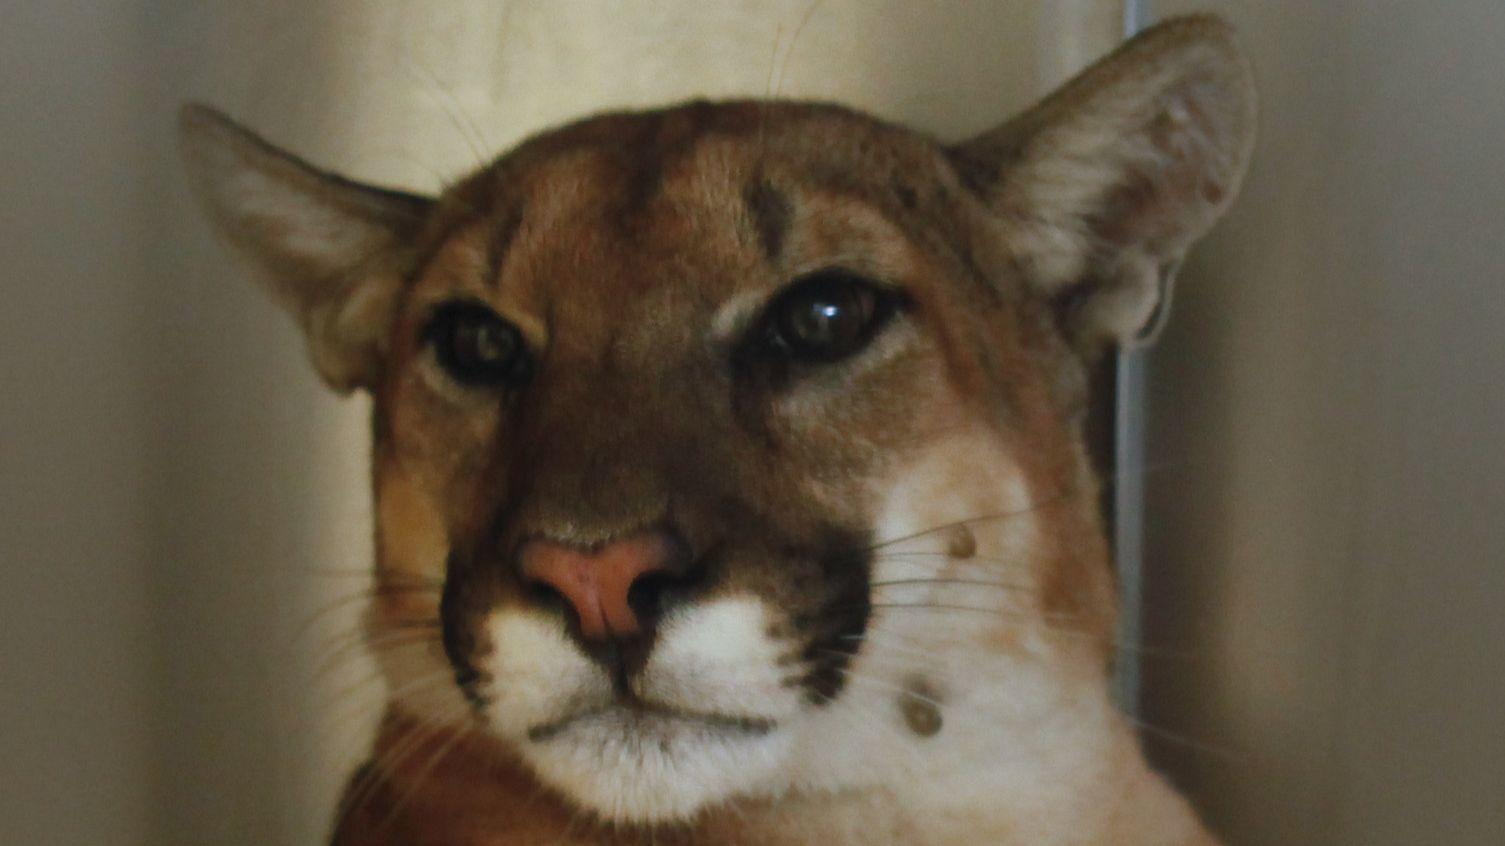 Mountain lion found taking a catnap in Pasadena backyard